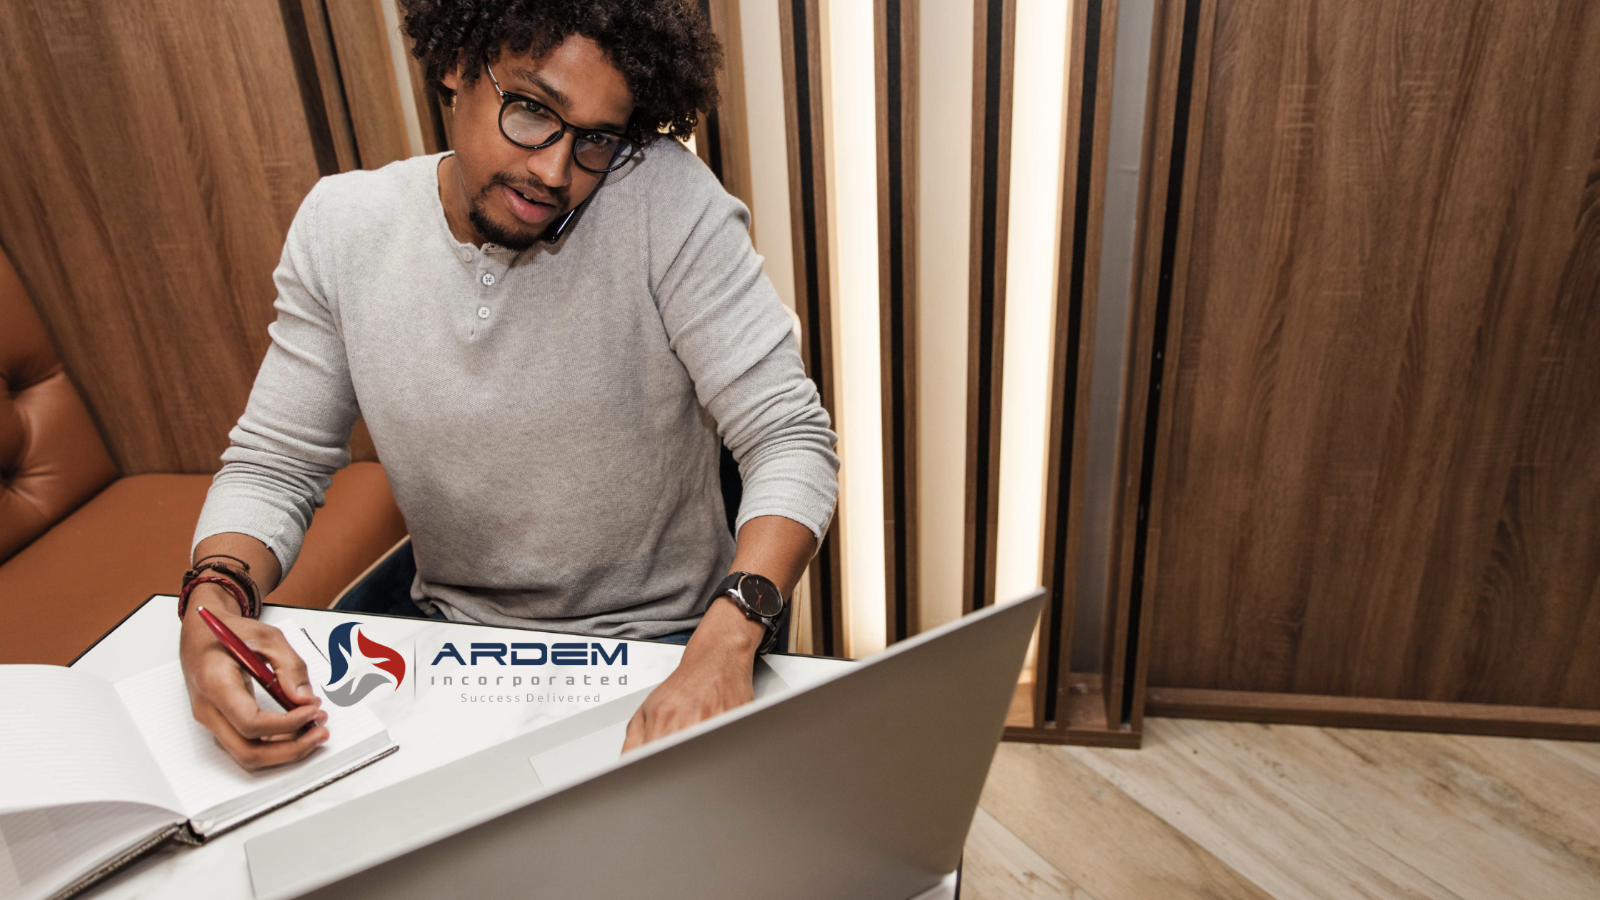 ARDEM Ranks among the Top 10 Back Office Support Providers in 2021